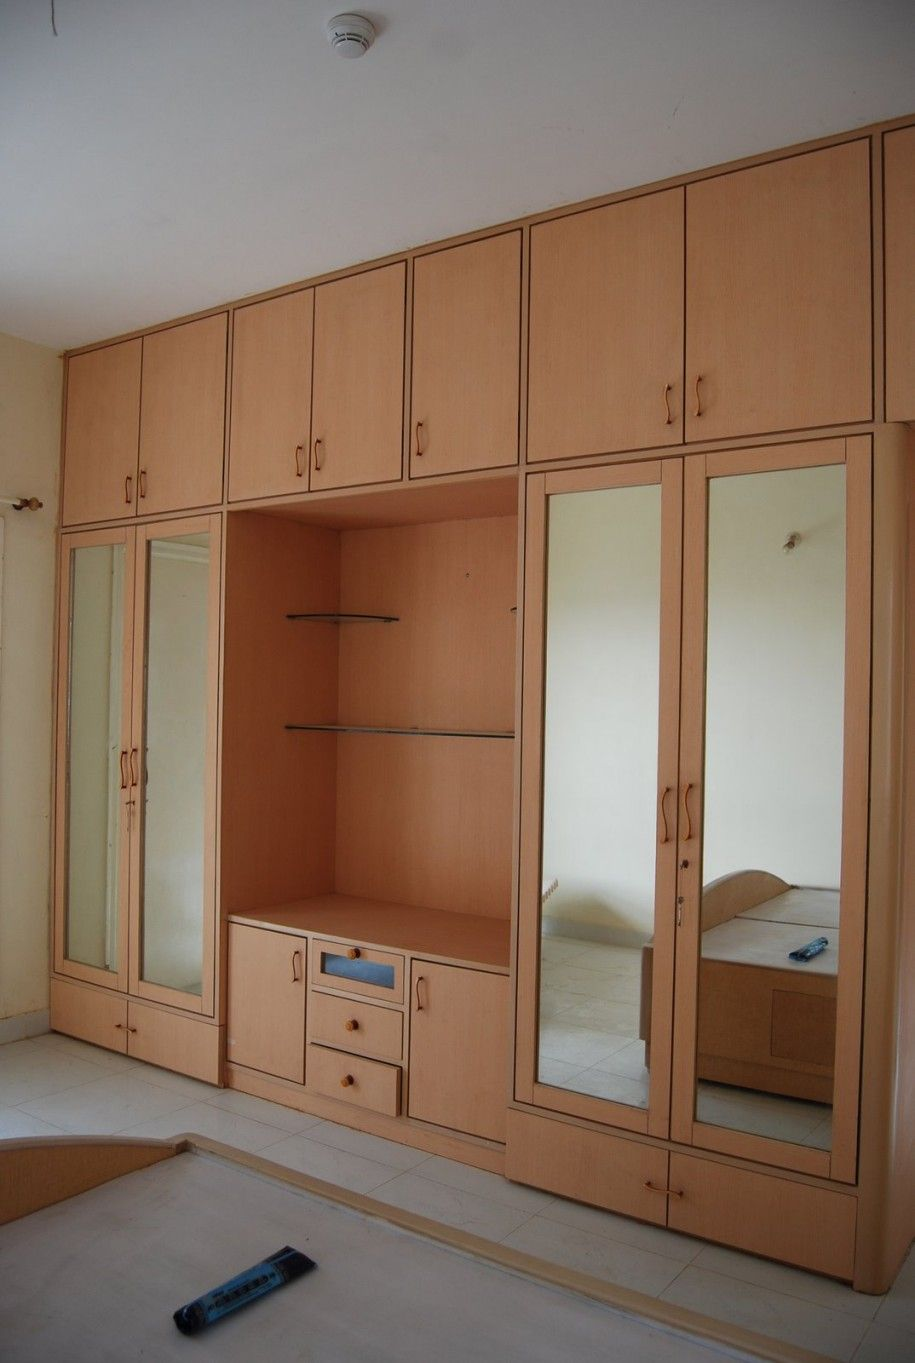 of bedroom wall doors in mirror mirrored mesmerizing cupboard sliding closet wardrobe